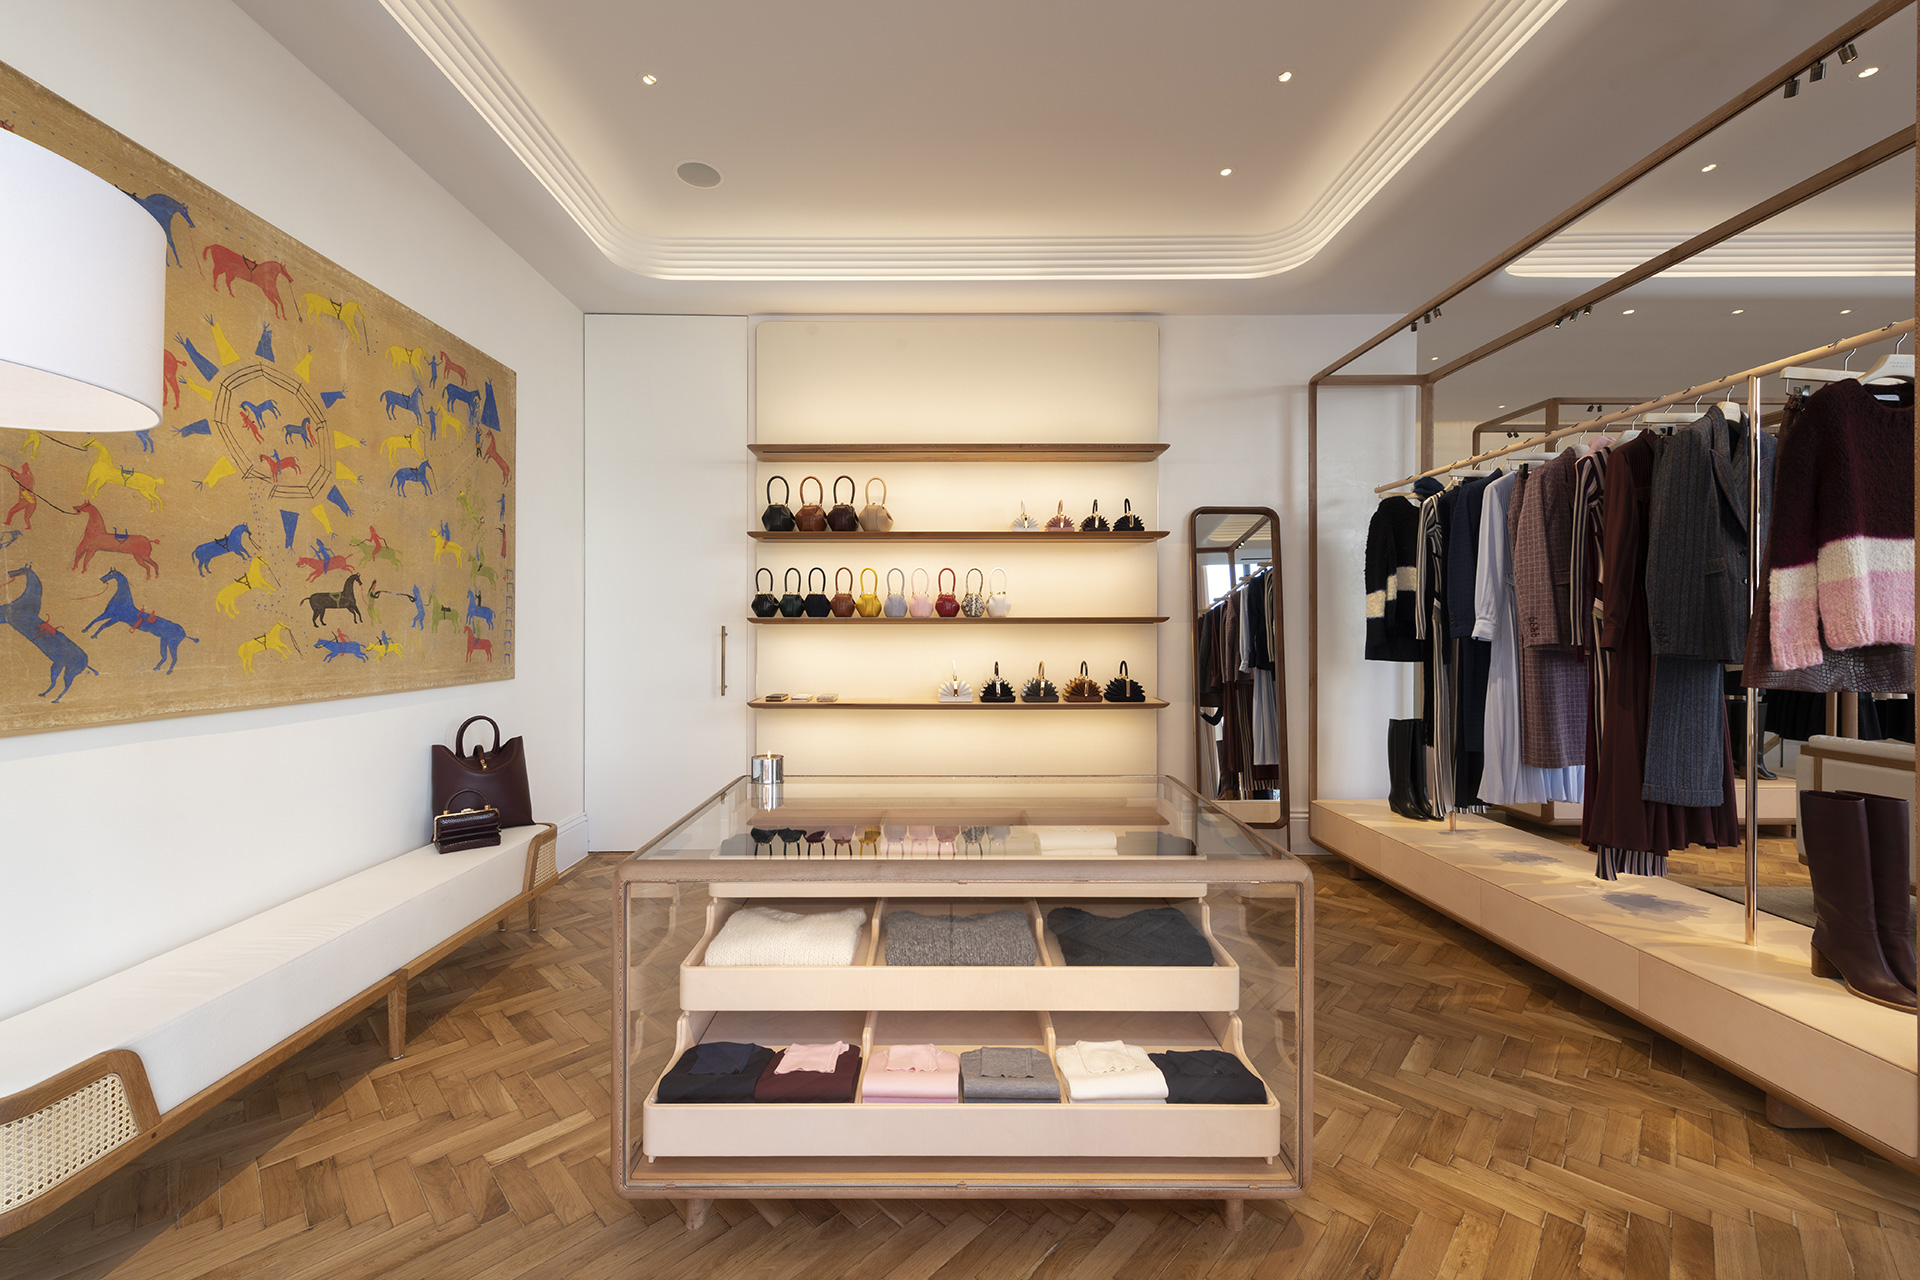 Interiors of Gabriela Hearst's London store | Gabriela Hearst London Store | Foster + Partners | STIRworld